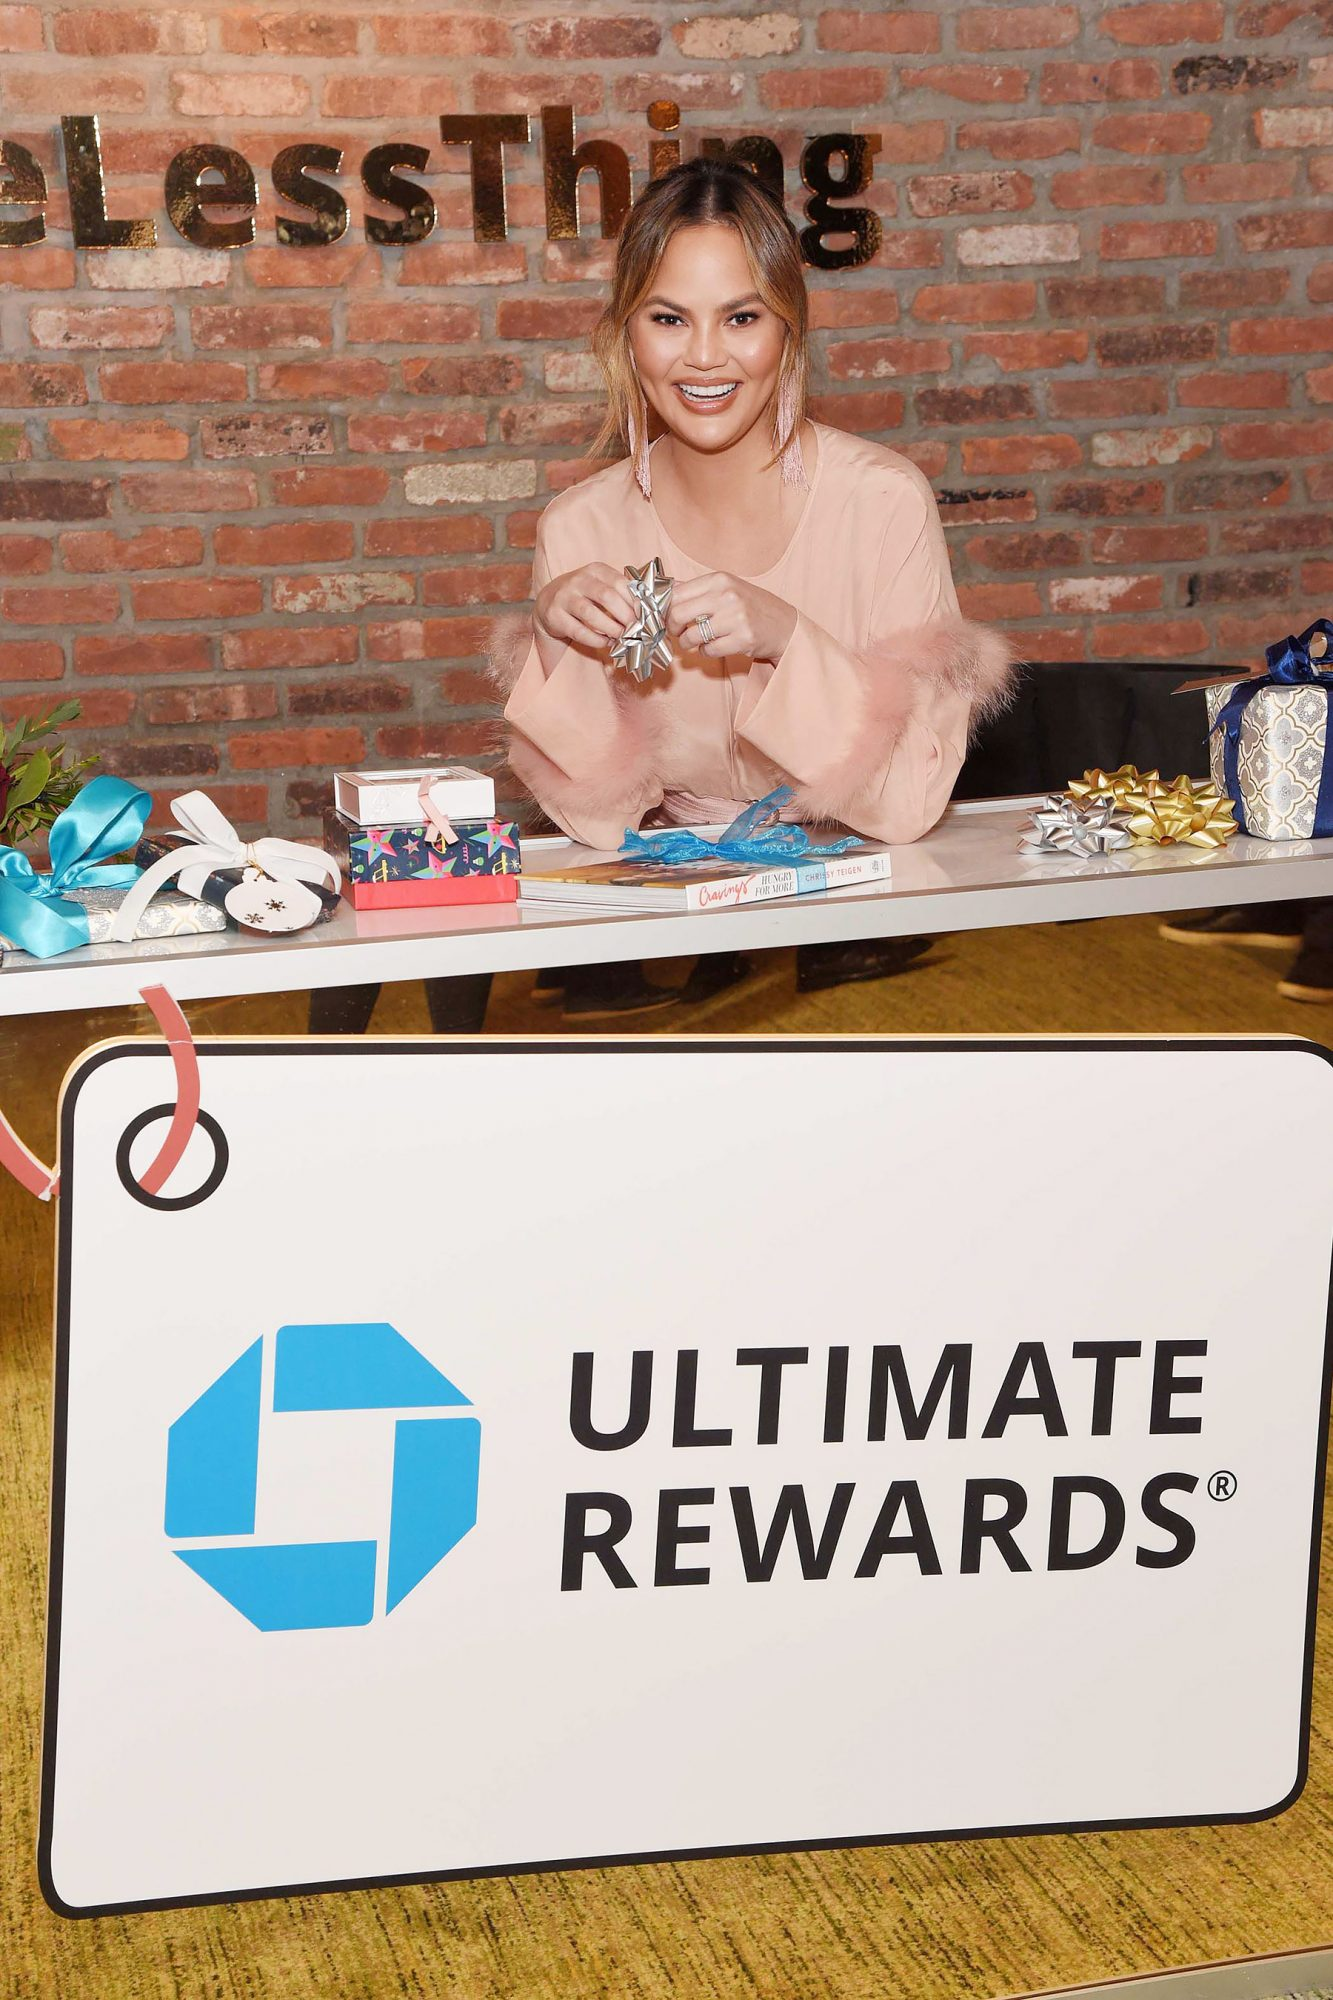 Chrissy Teigen Using Chase Ultimate Rewards at the #OneLessThing Holiday Pop-Up Shop